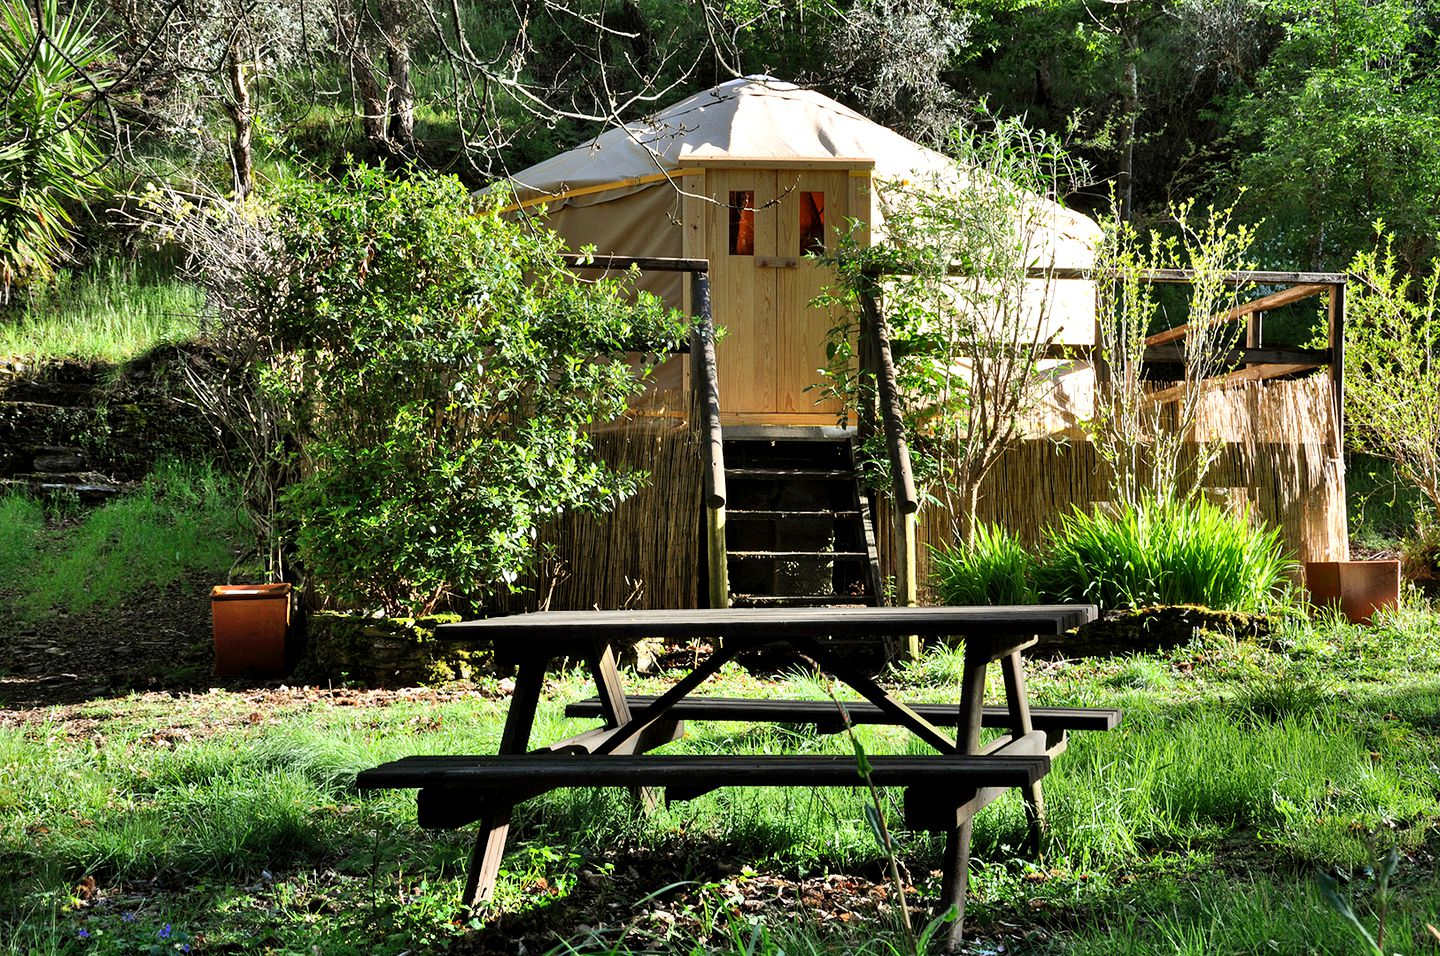 This Coimbra accommodation is ideal for glamping in Portugal